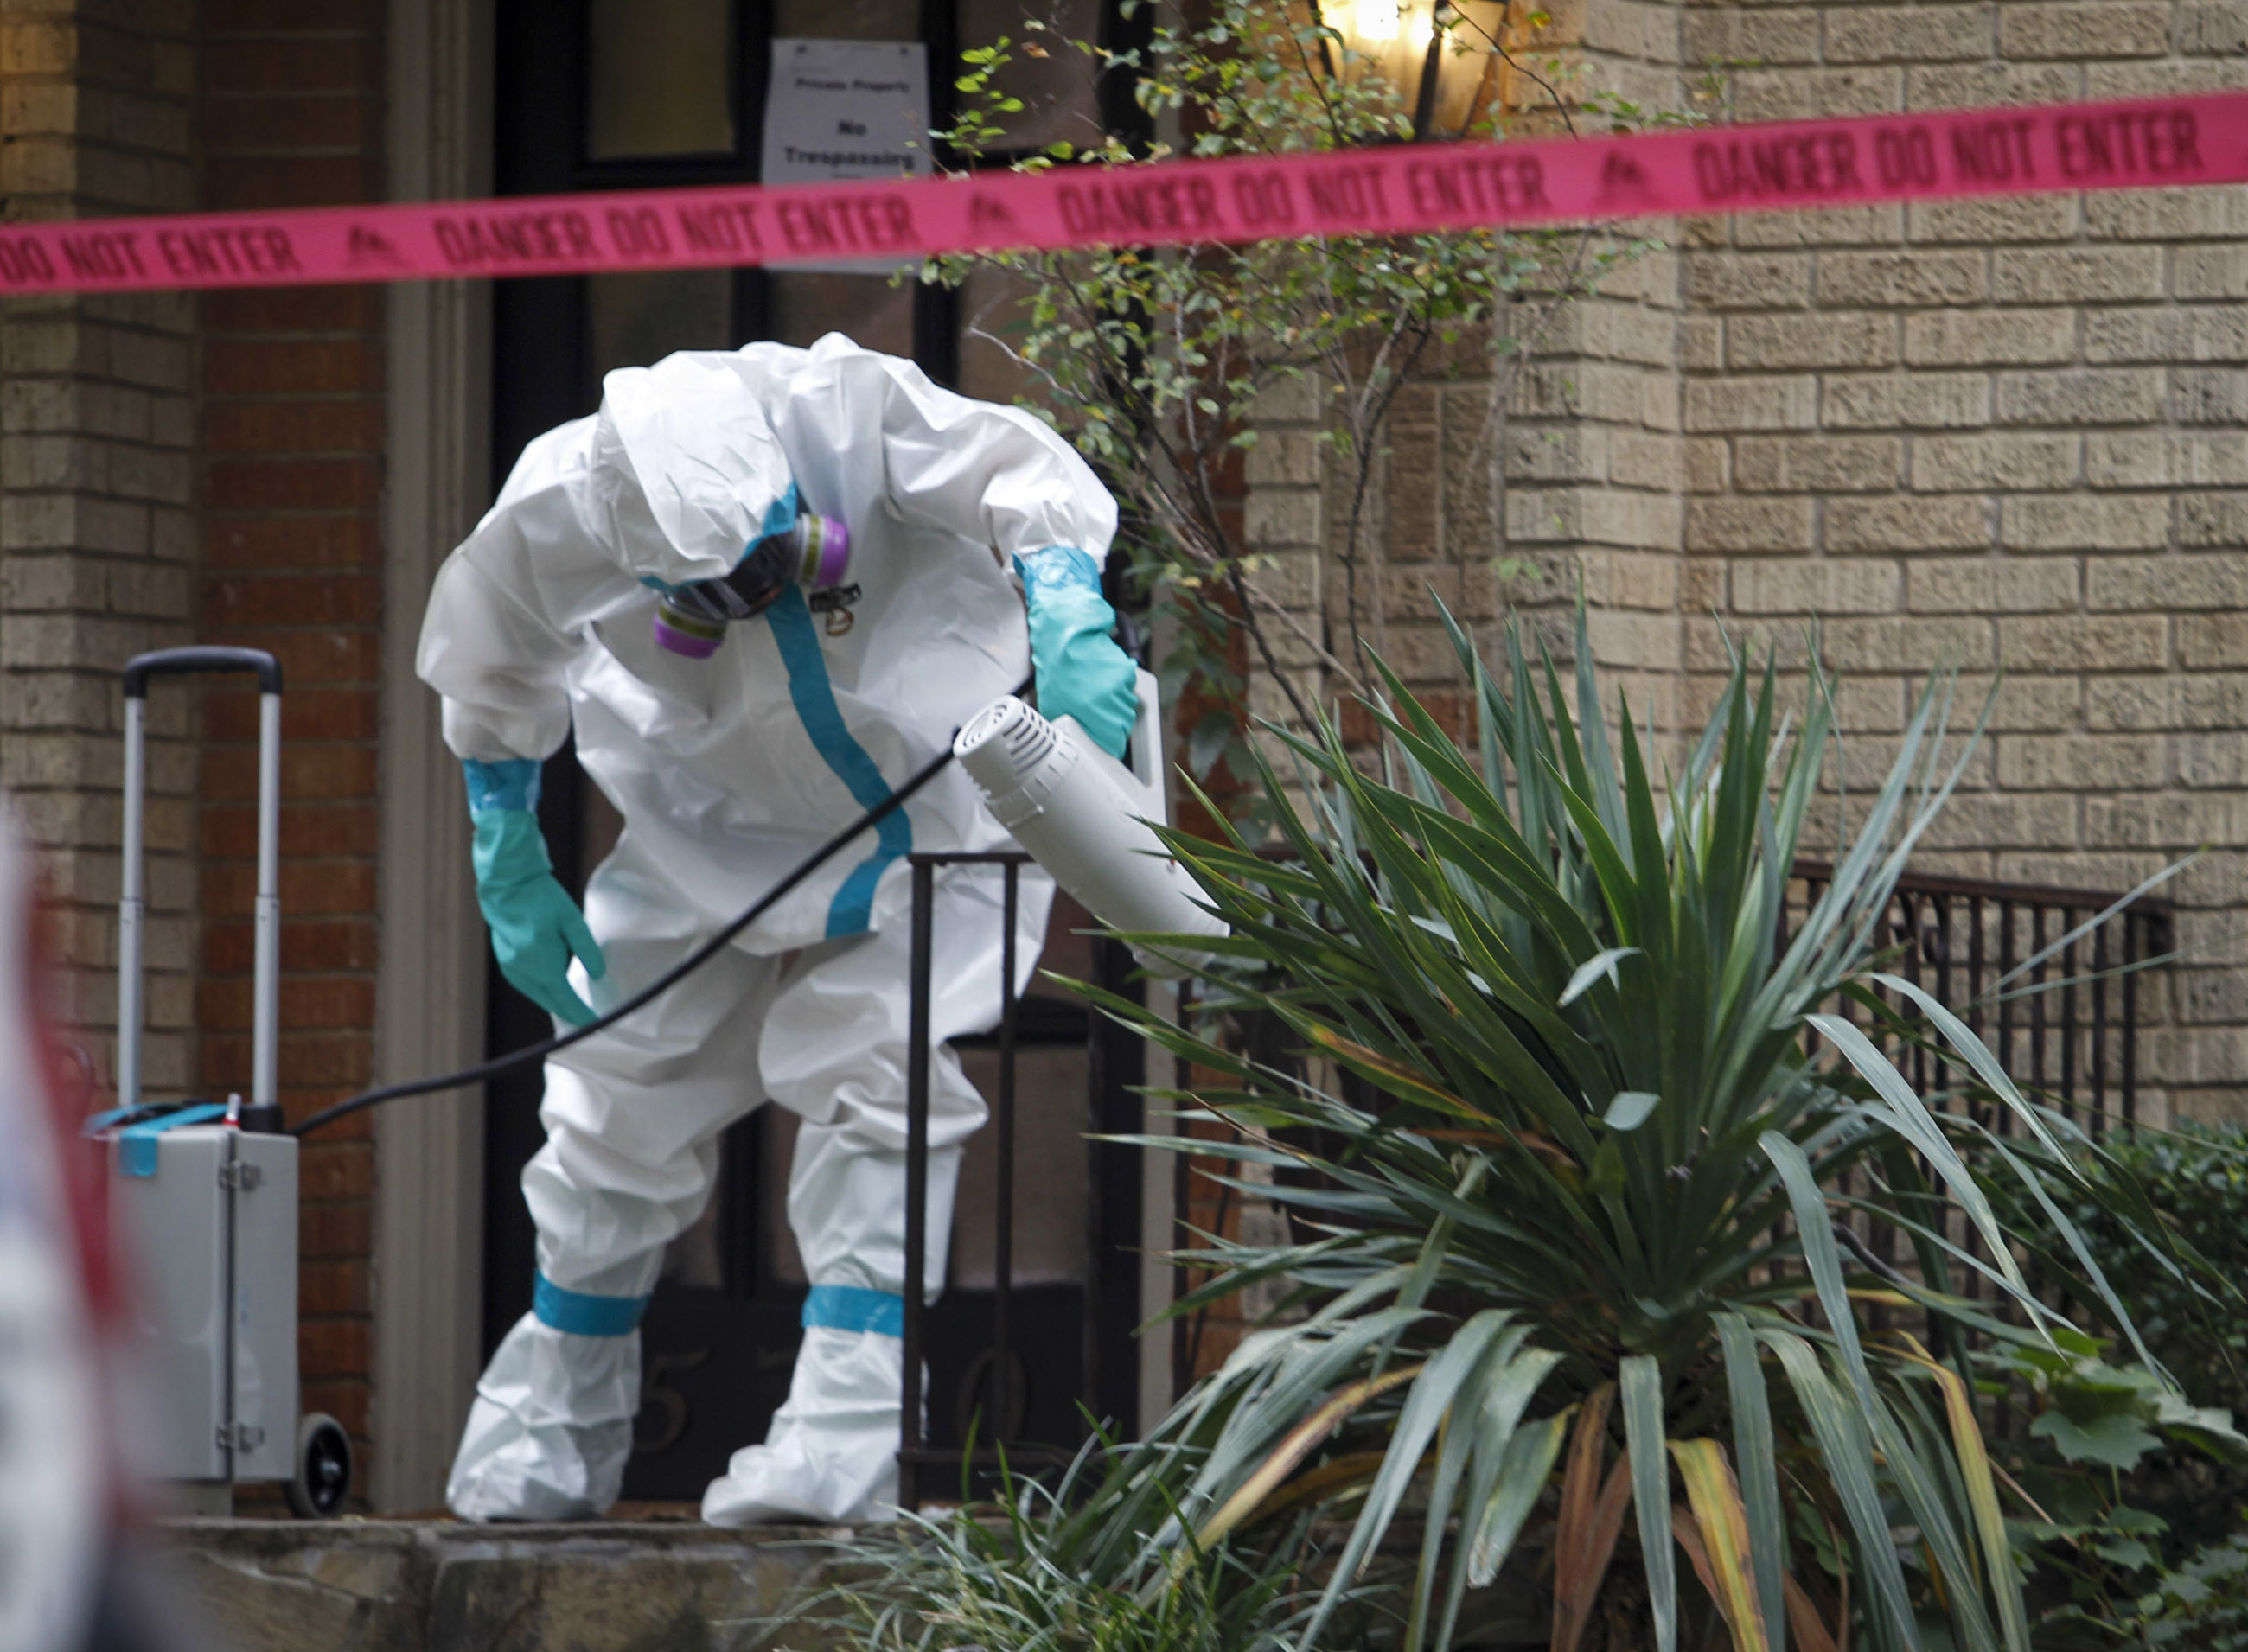 A worker with CG Environmental-Cleaning Guys sprays disinfectant outside the Marquita Street, Dallas apartment building  where a health care worker believed to be infected with Ebola lives on Sunday, Oct. 12, 2014. (Jim Tuttle/The Dallas Morning News)